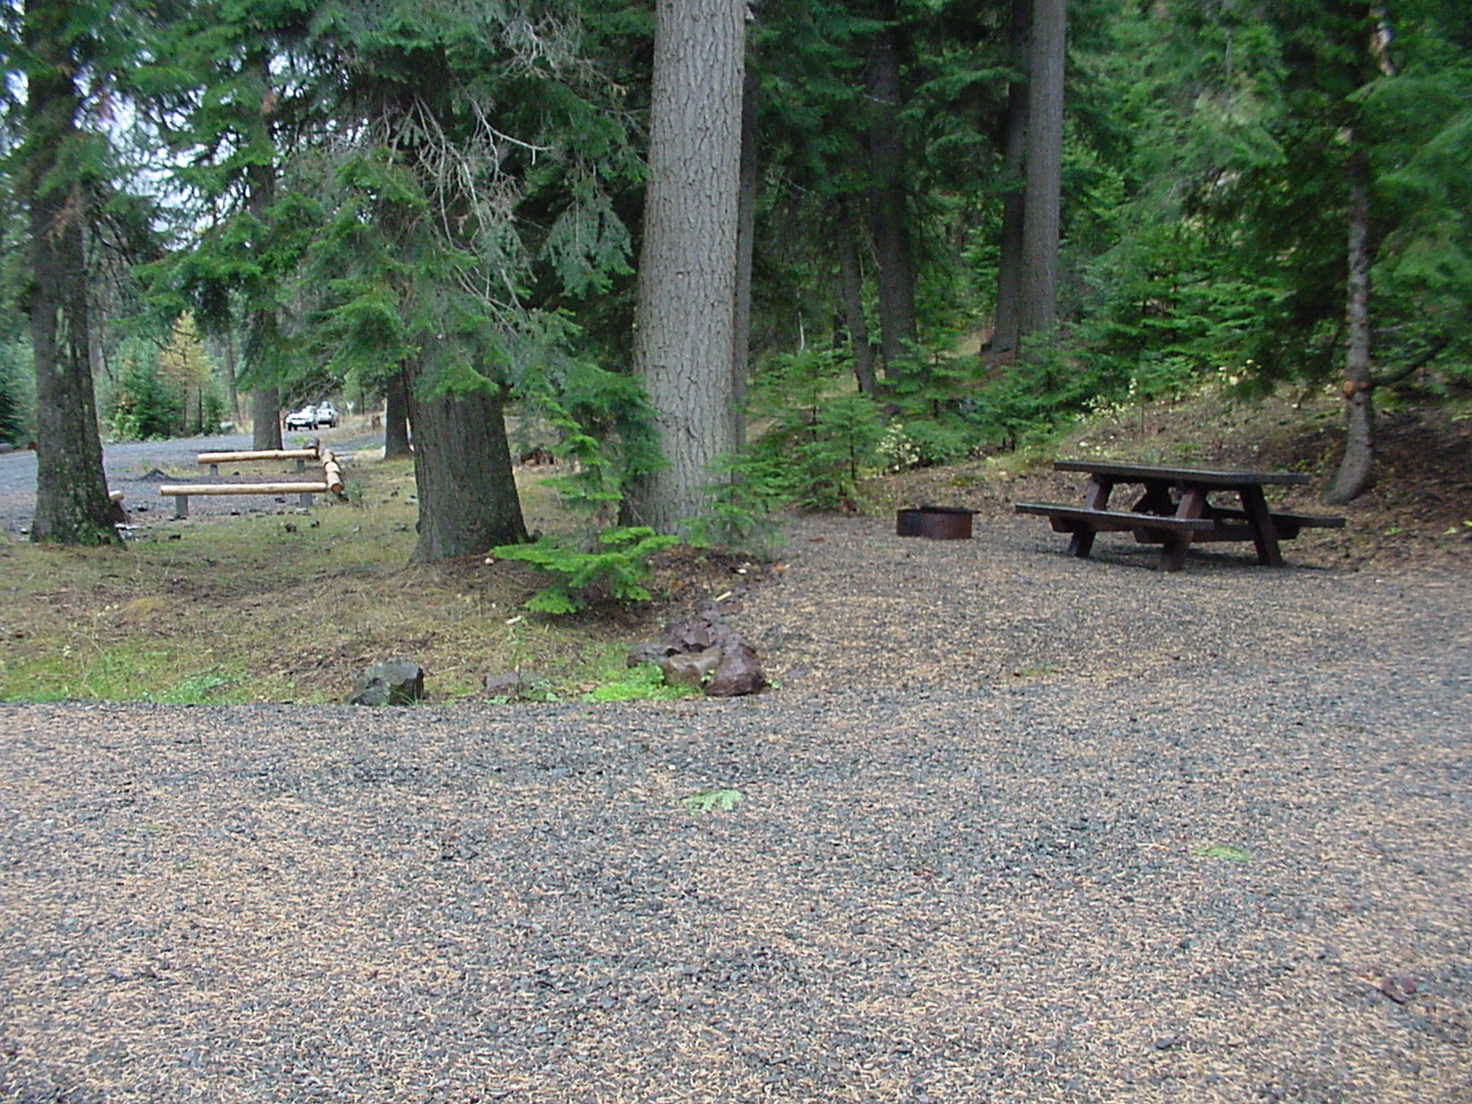 Forested campsite in the pine trees